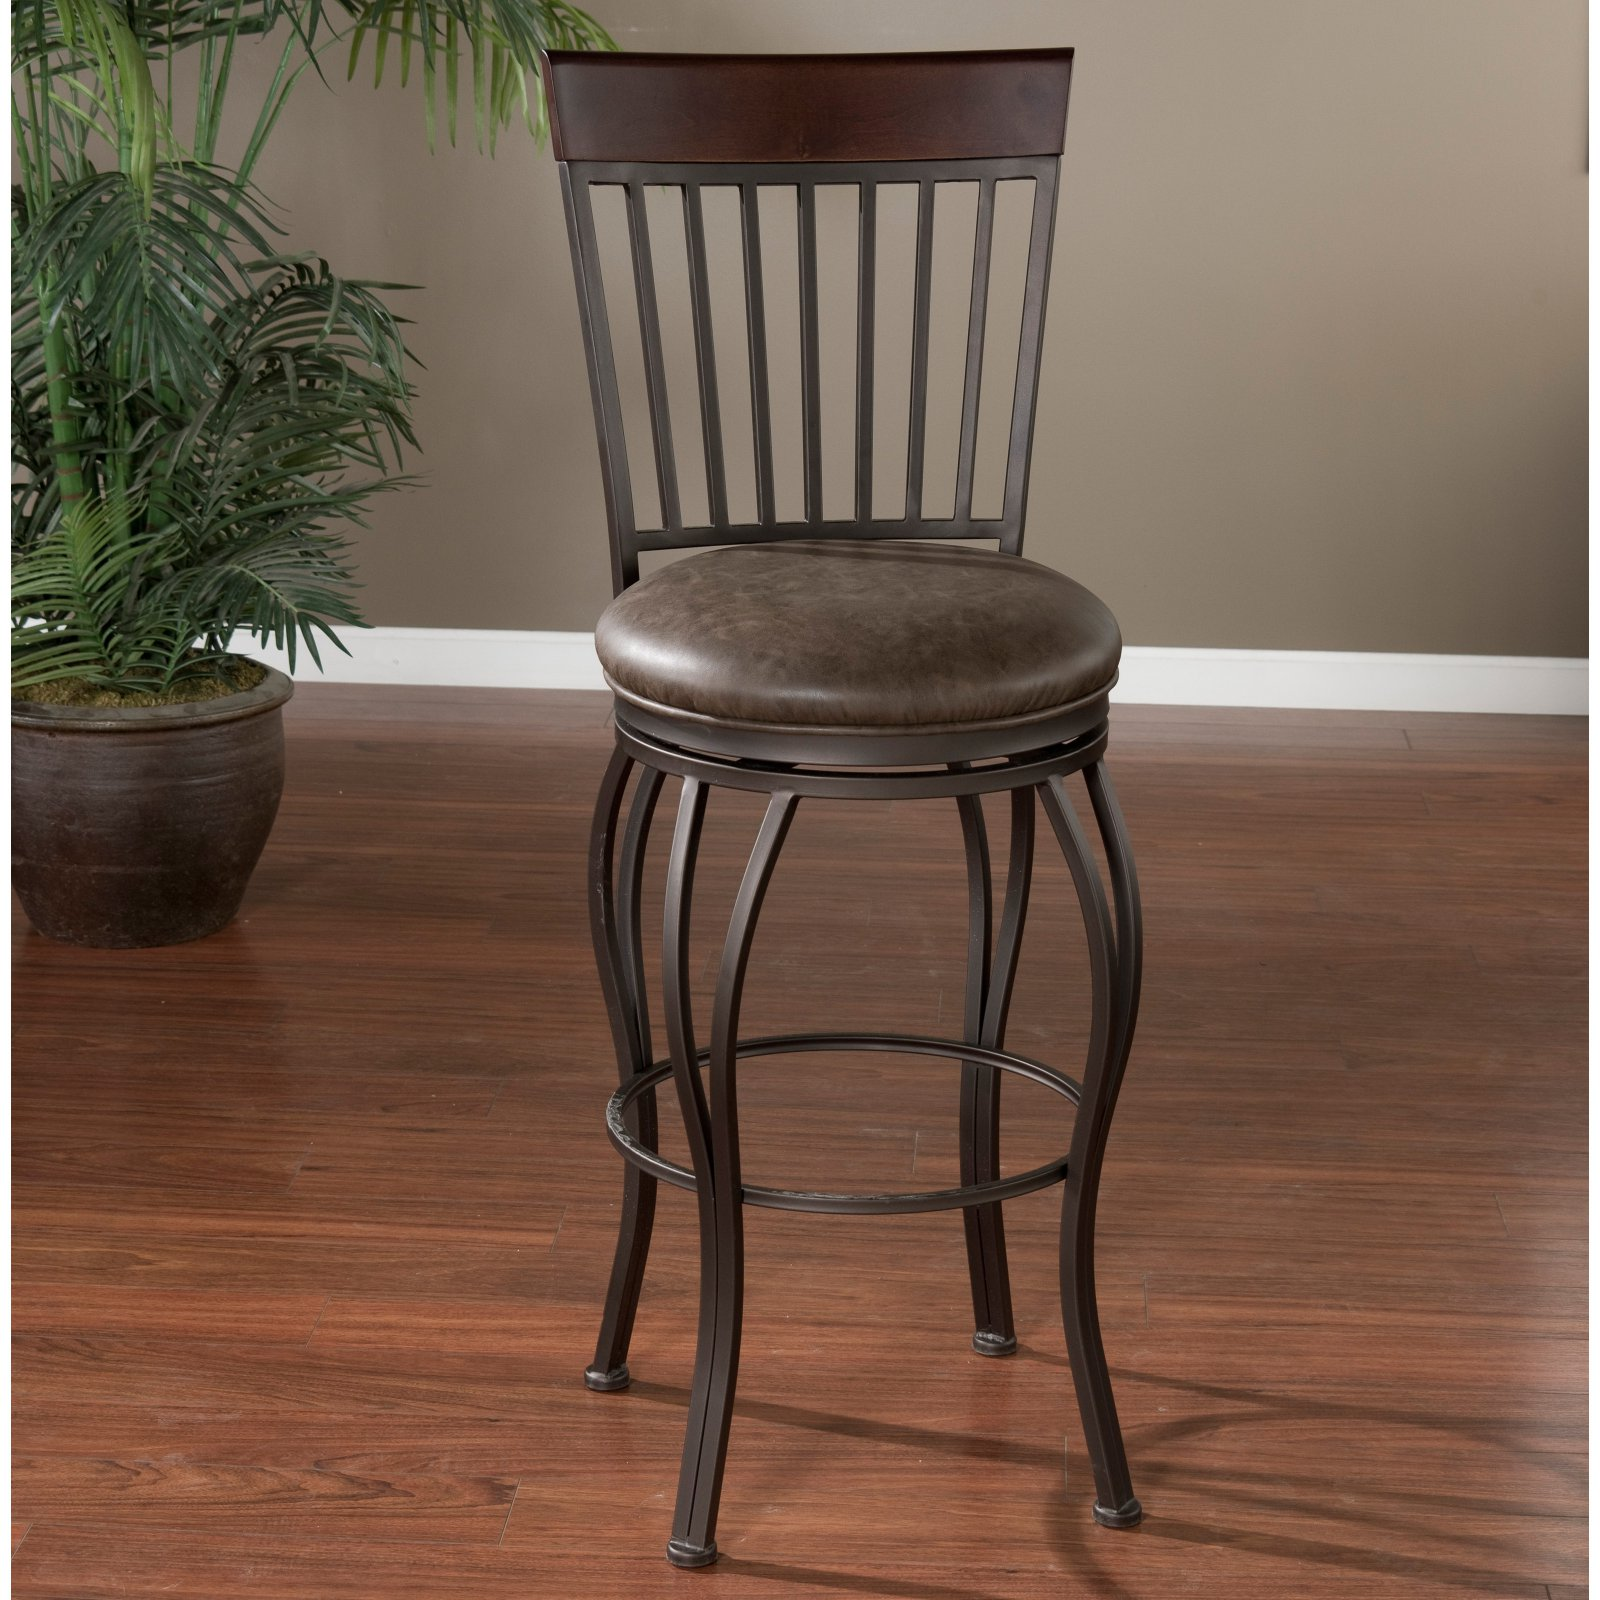 AHB Torrance Counter Stool - Pepper